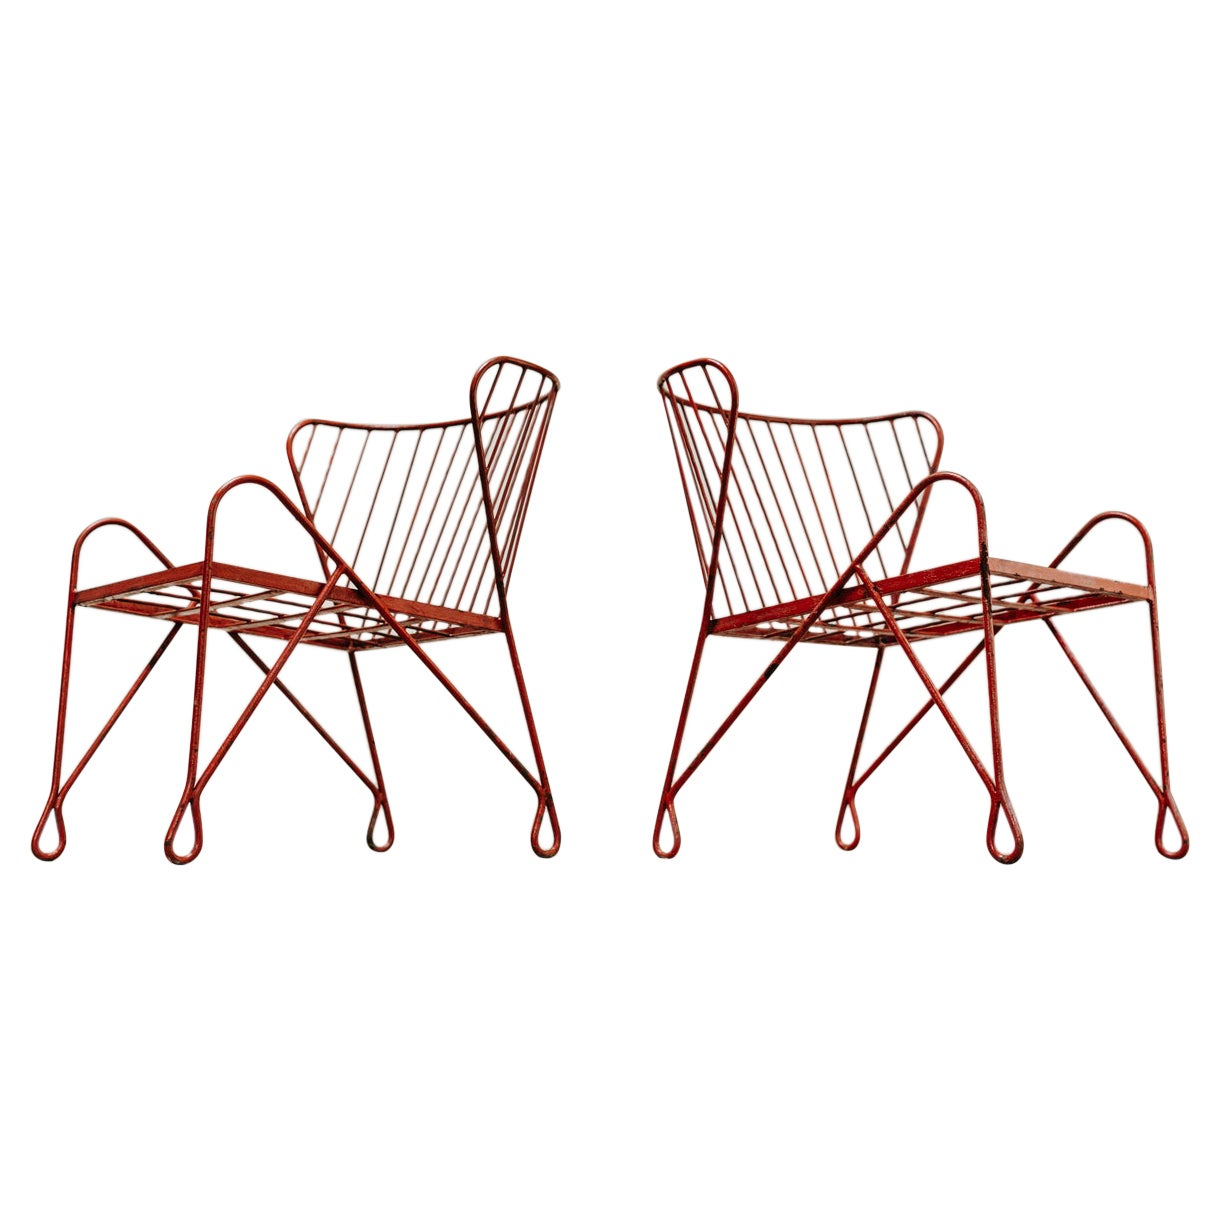 Pair of 1970s Garden Chairs ..